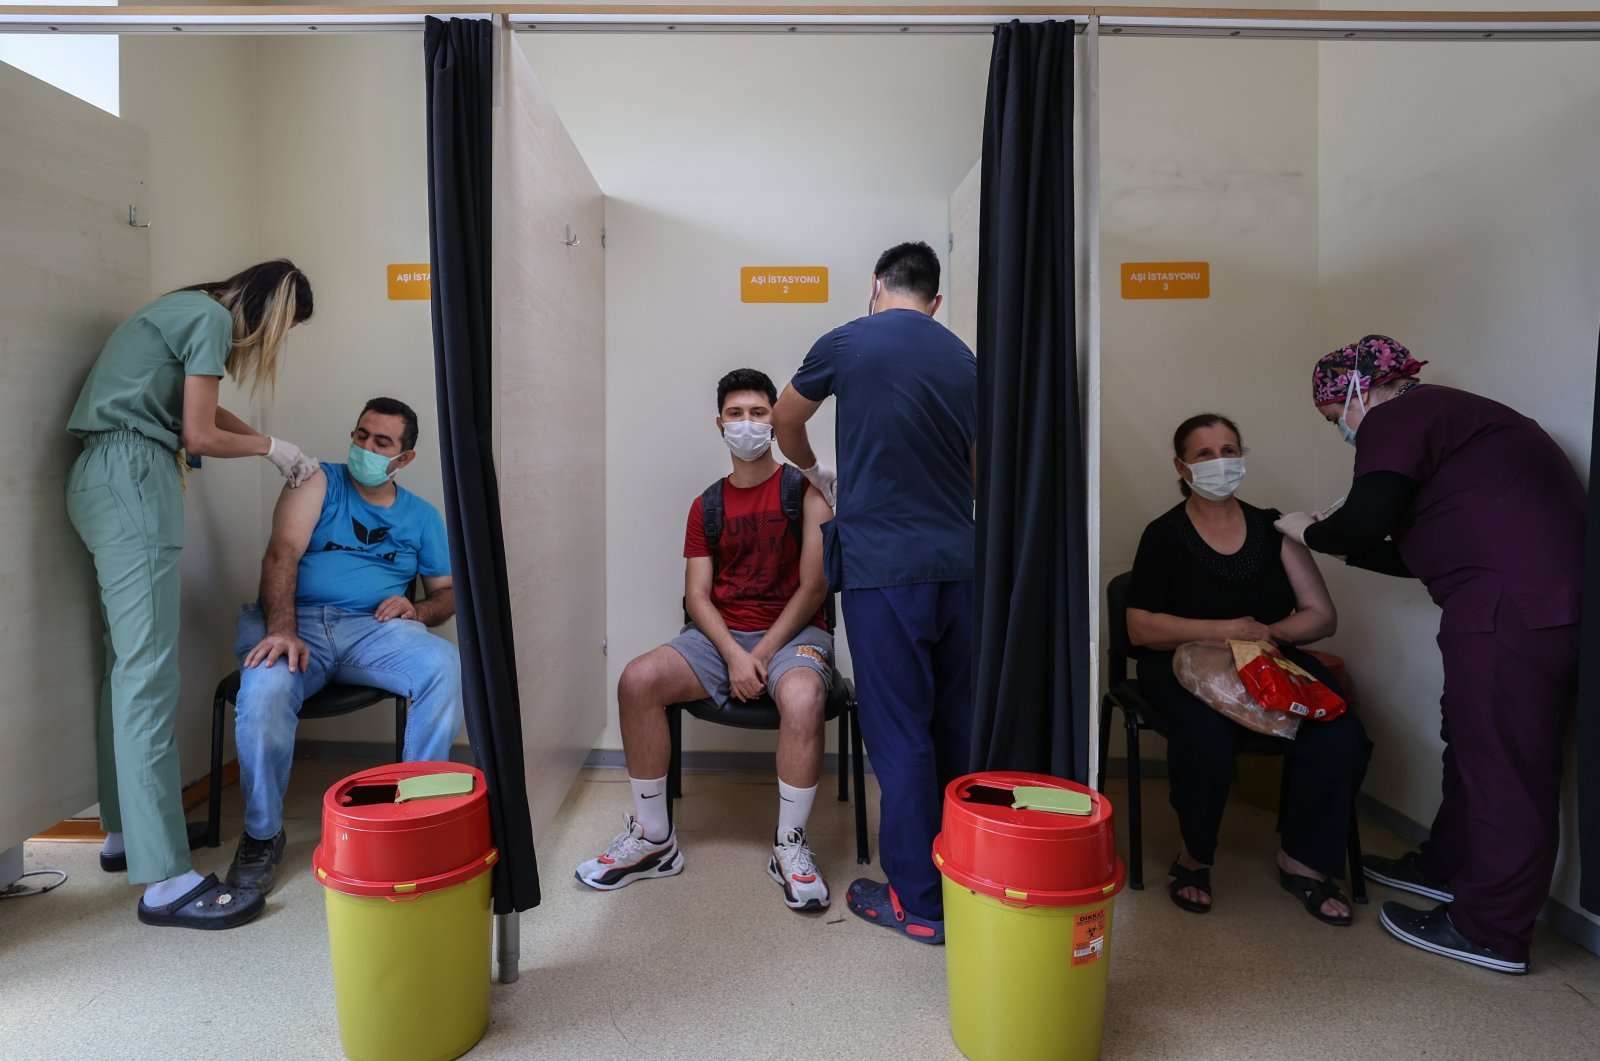 People get vaccinated against COVID-19 at a hospital in Izmir, western Turkey, June 18, 2021. (AA PHOTO)